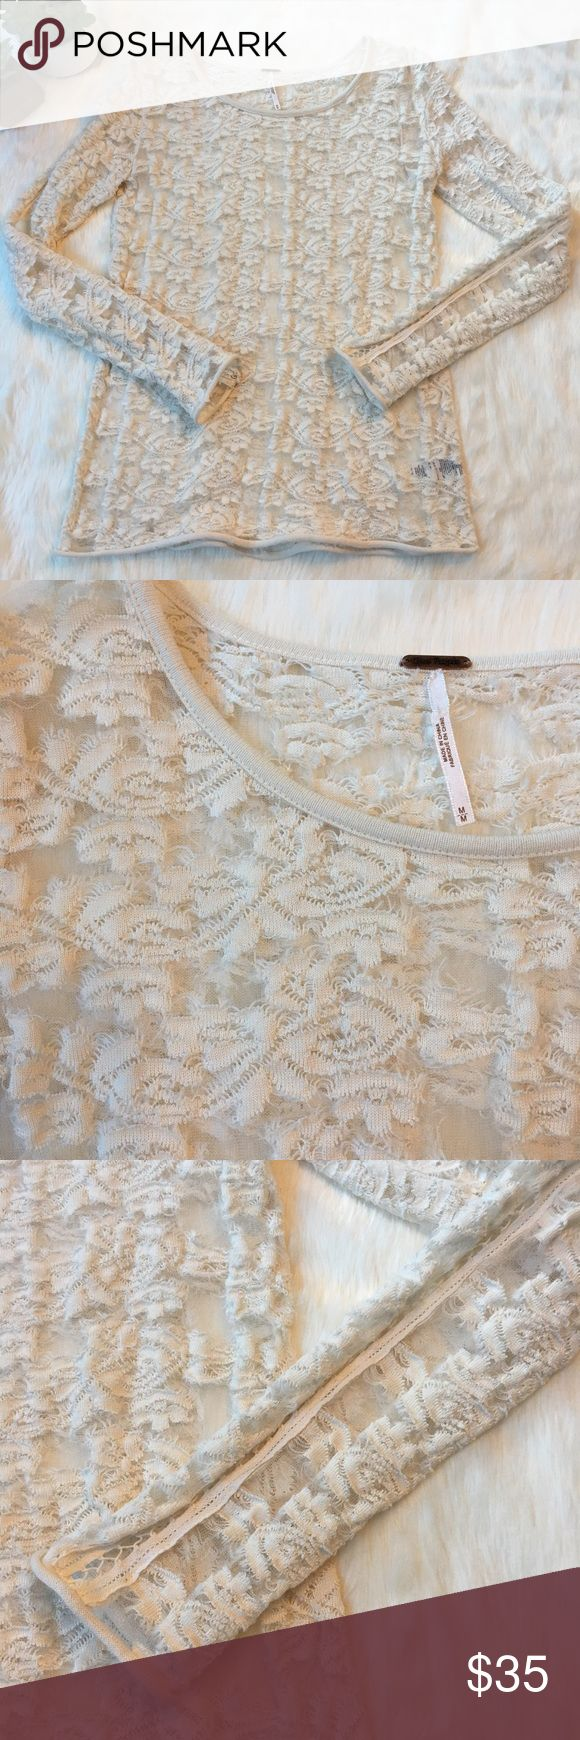 Free People cream lace long sleeve top Gorgeous cream lace top with lots of stretch. Netting down top of sleeve. Free People Tops Blouses